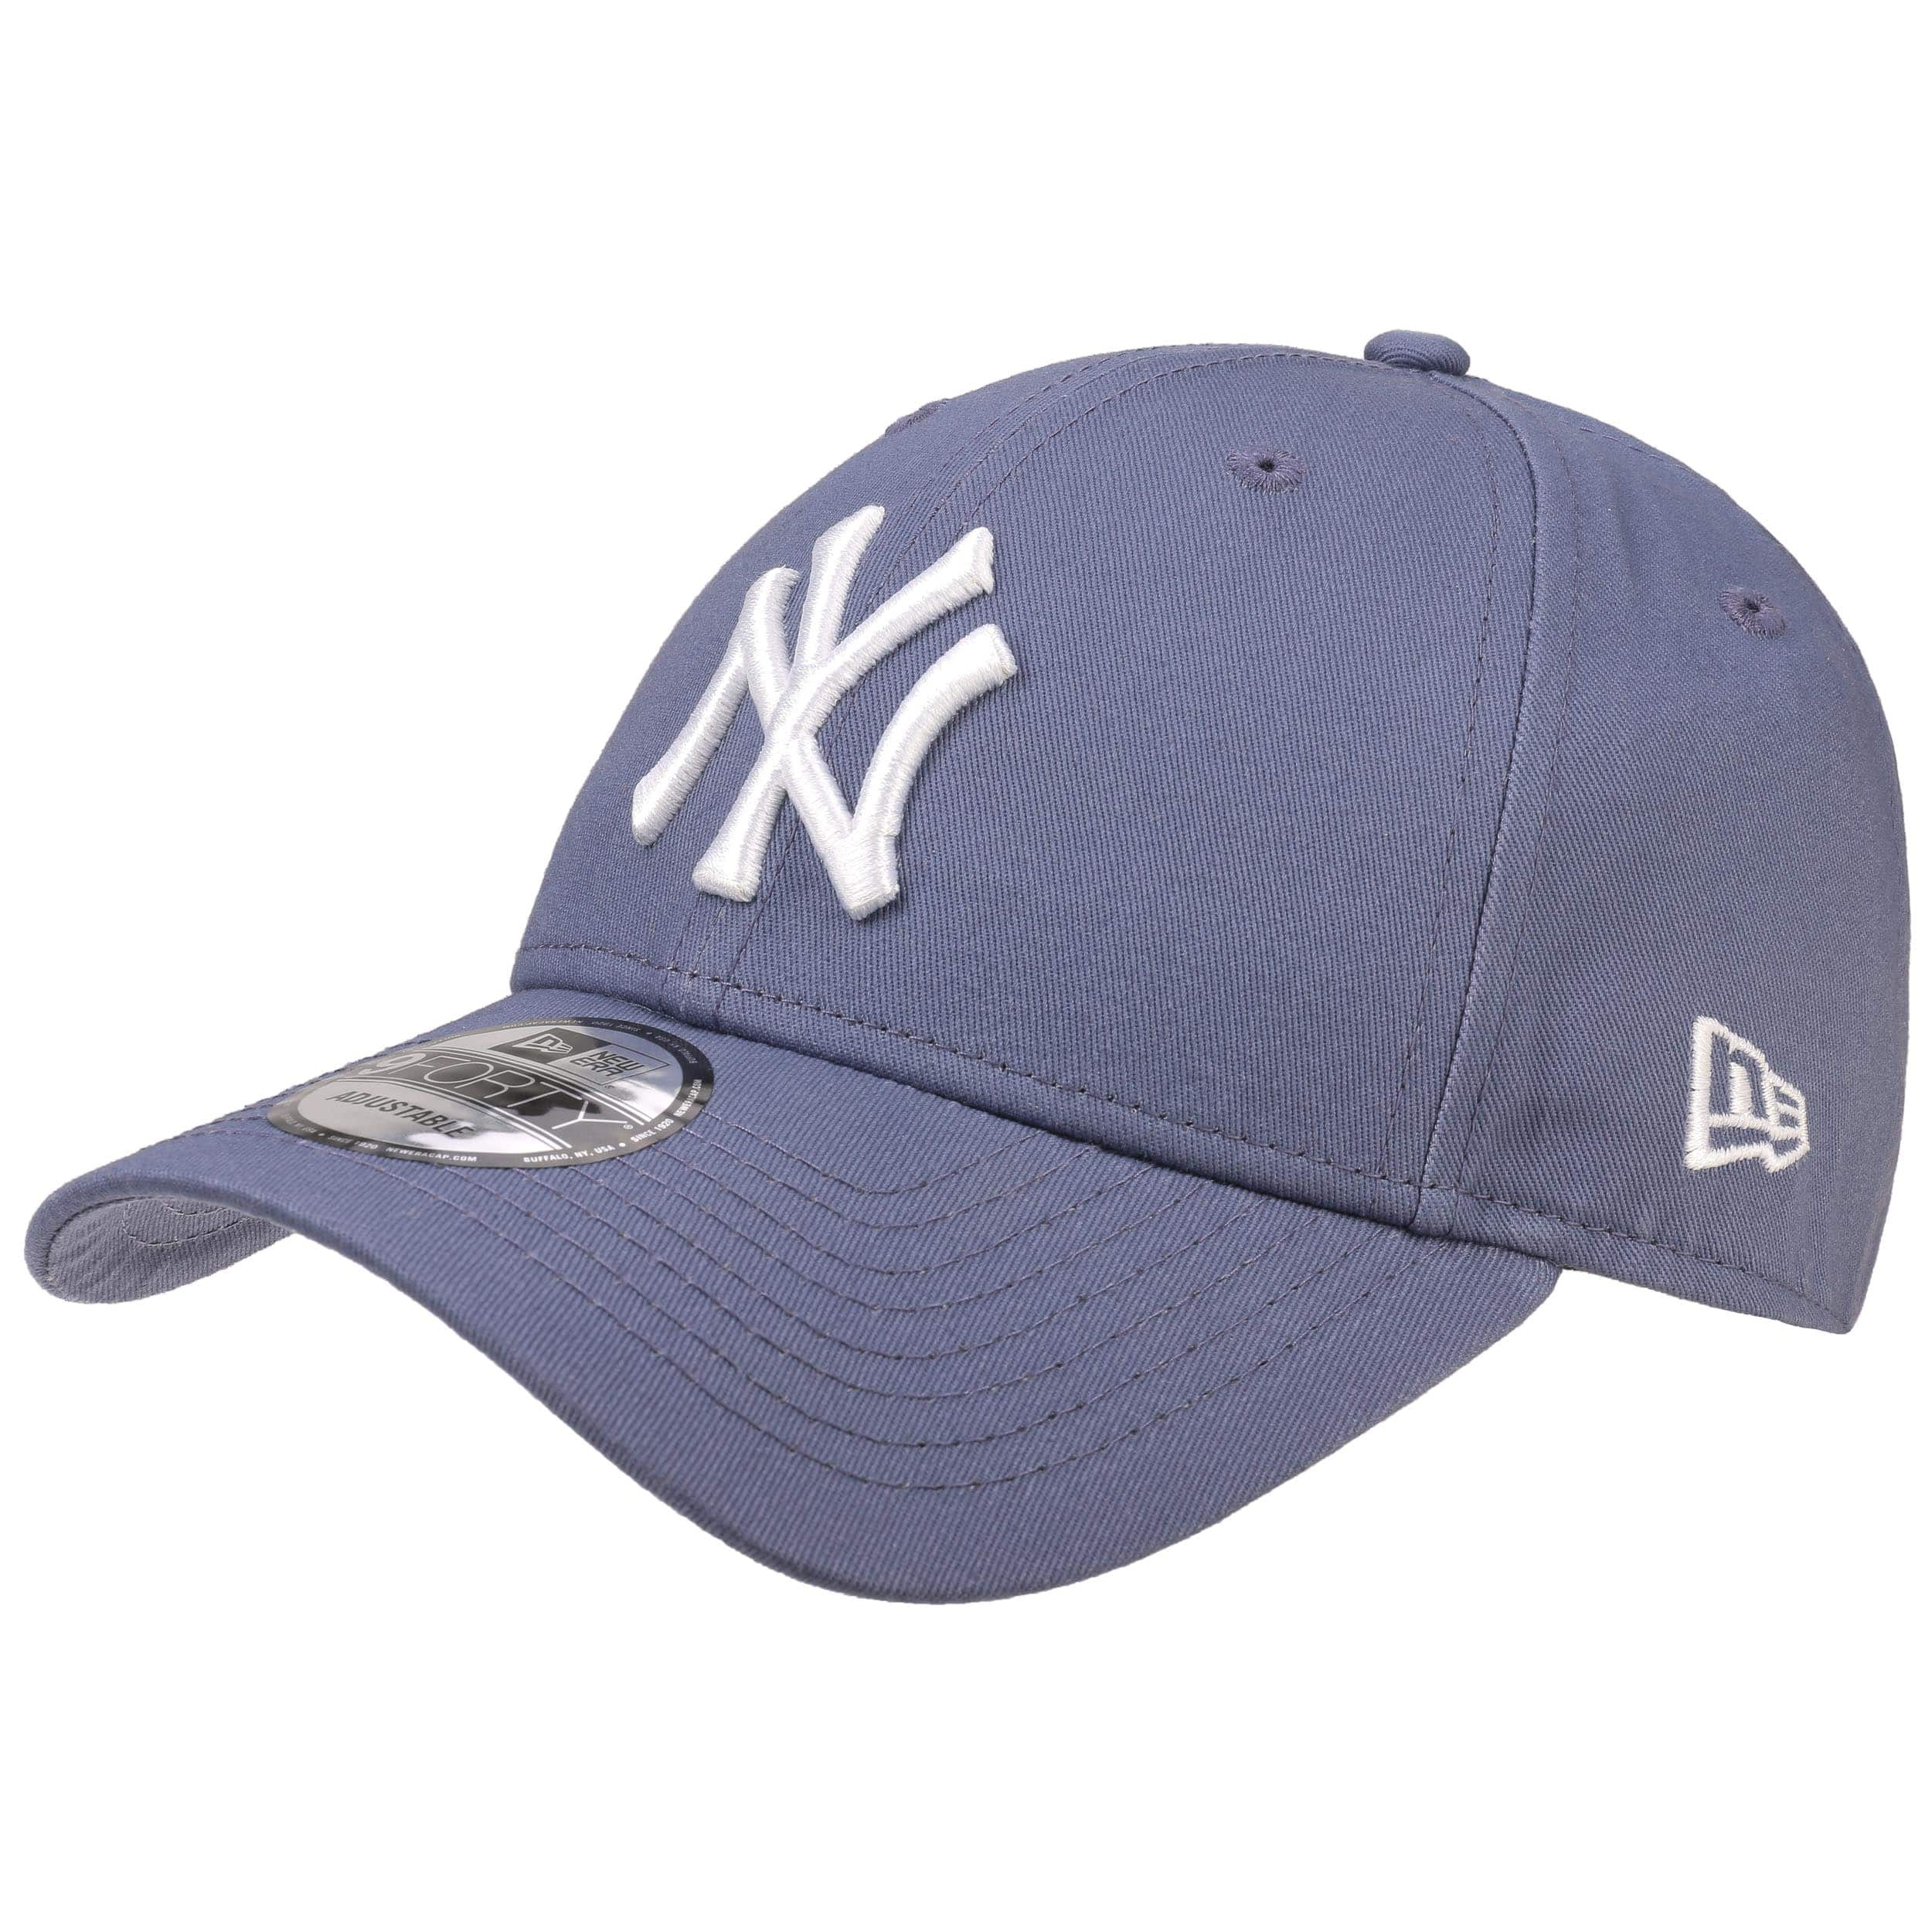 3dfe9480096fd 9Forty League Essential NY Cap by New Era - Gorras - sombreroshop.es